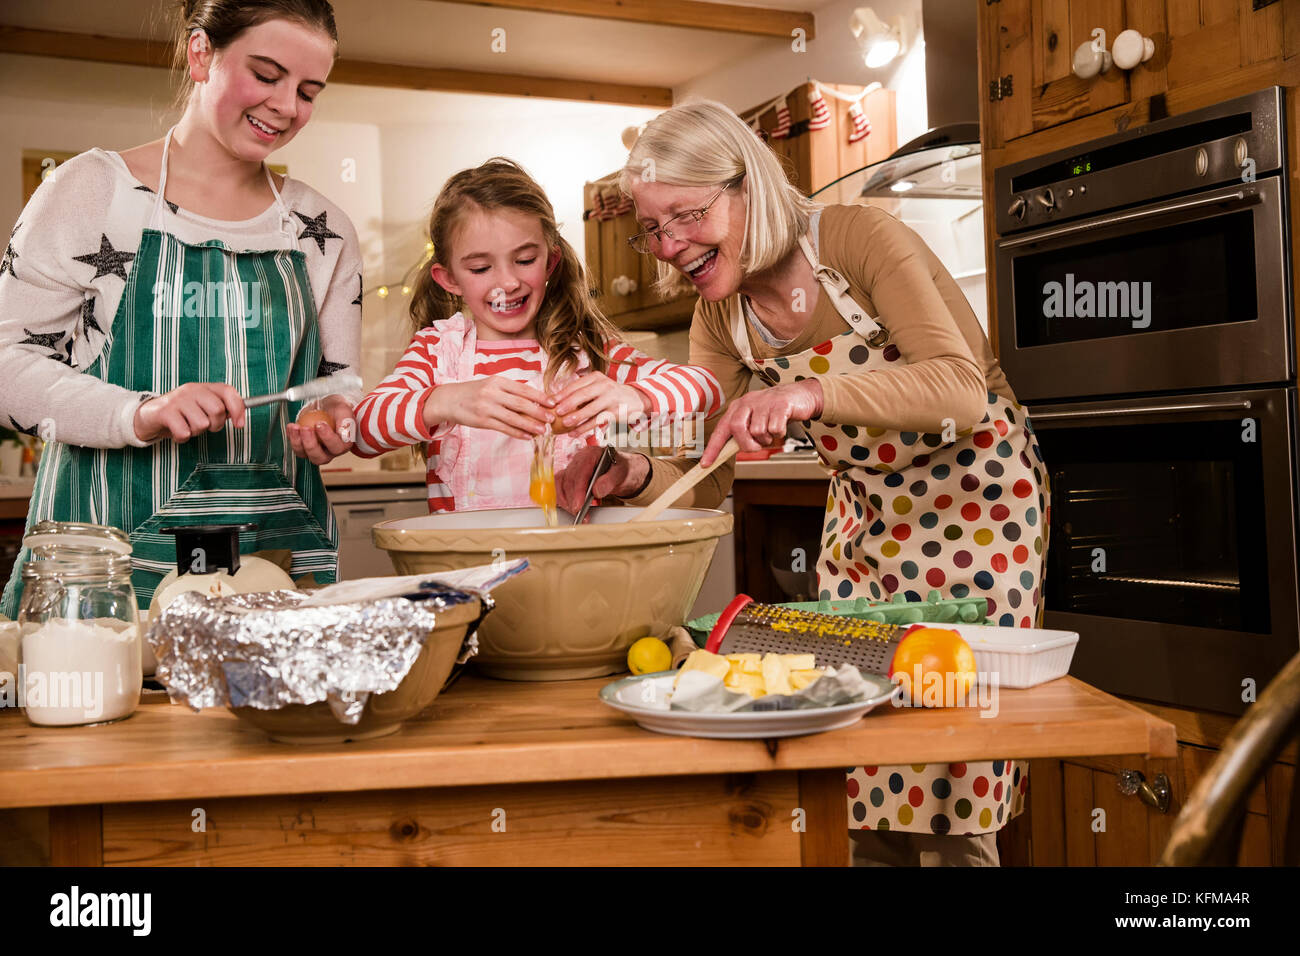 Two sisters are baking cakes in the kitchen with their ...